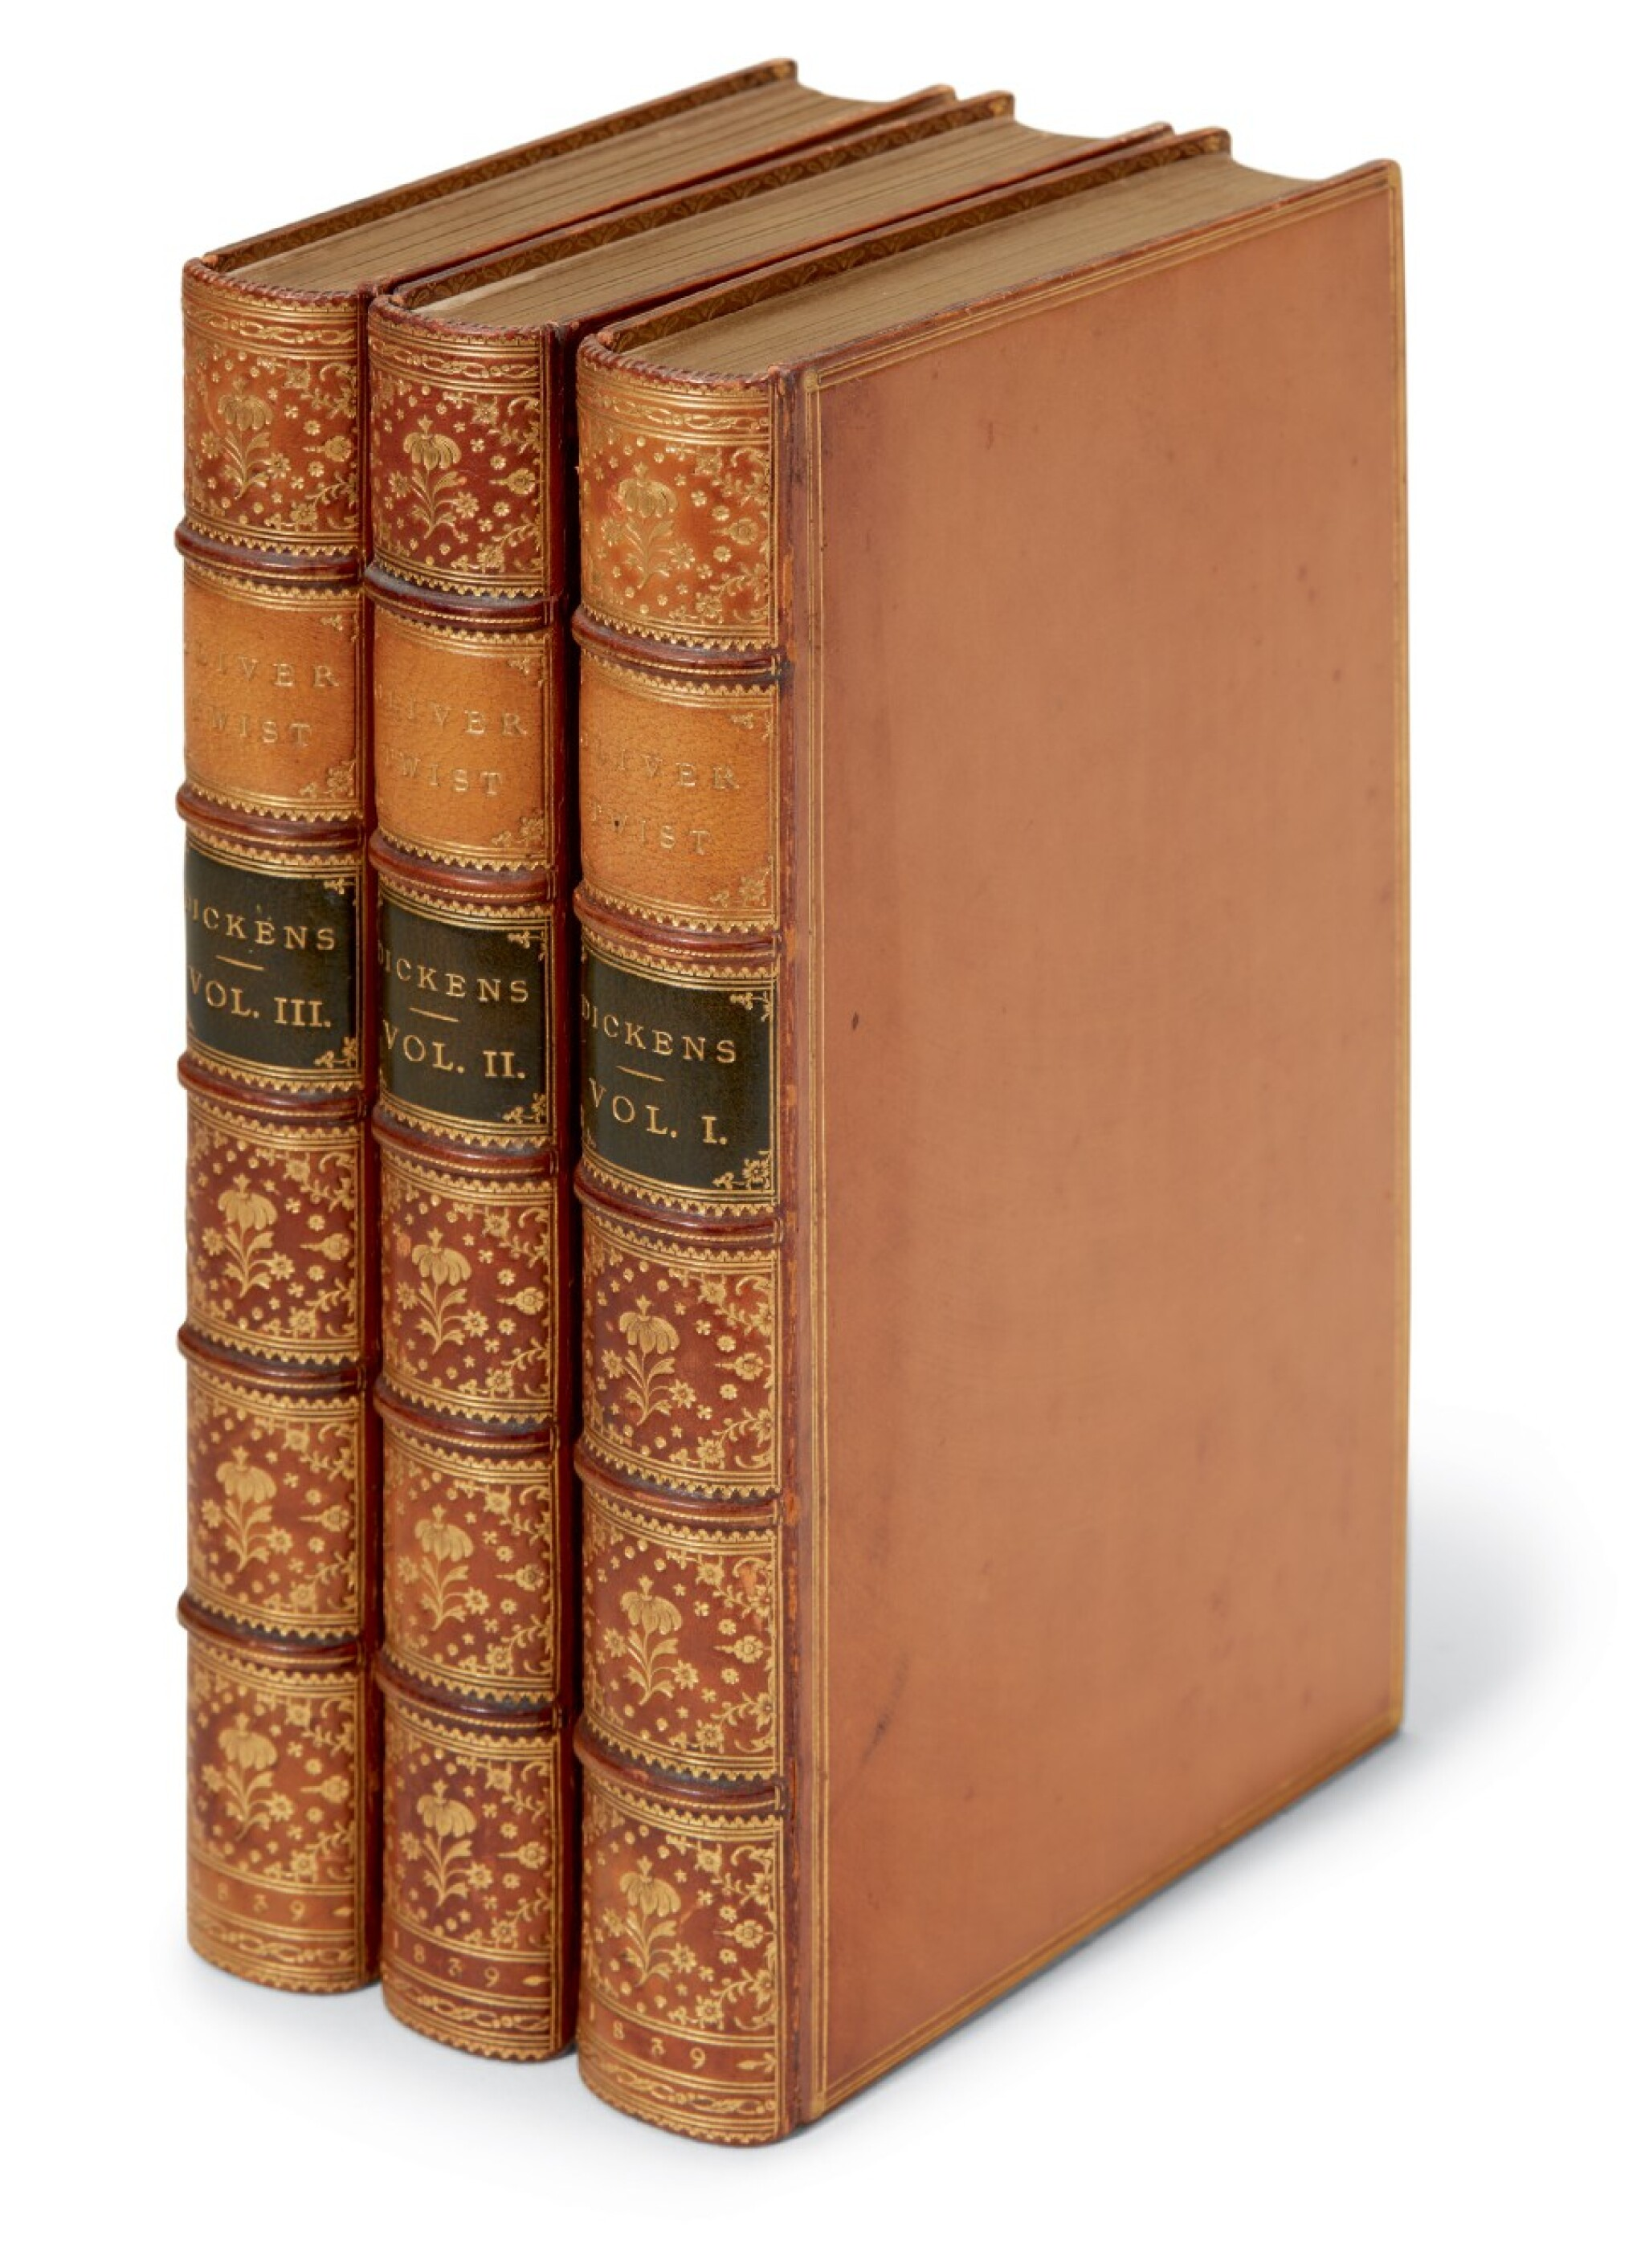 """View full screen - View 1 of Lot 48. Dickens, Oliver Twist, 1839, """"new edition"""" [second edition, later issue]."""